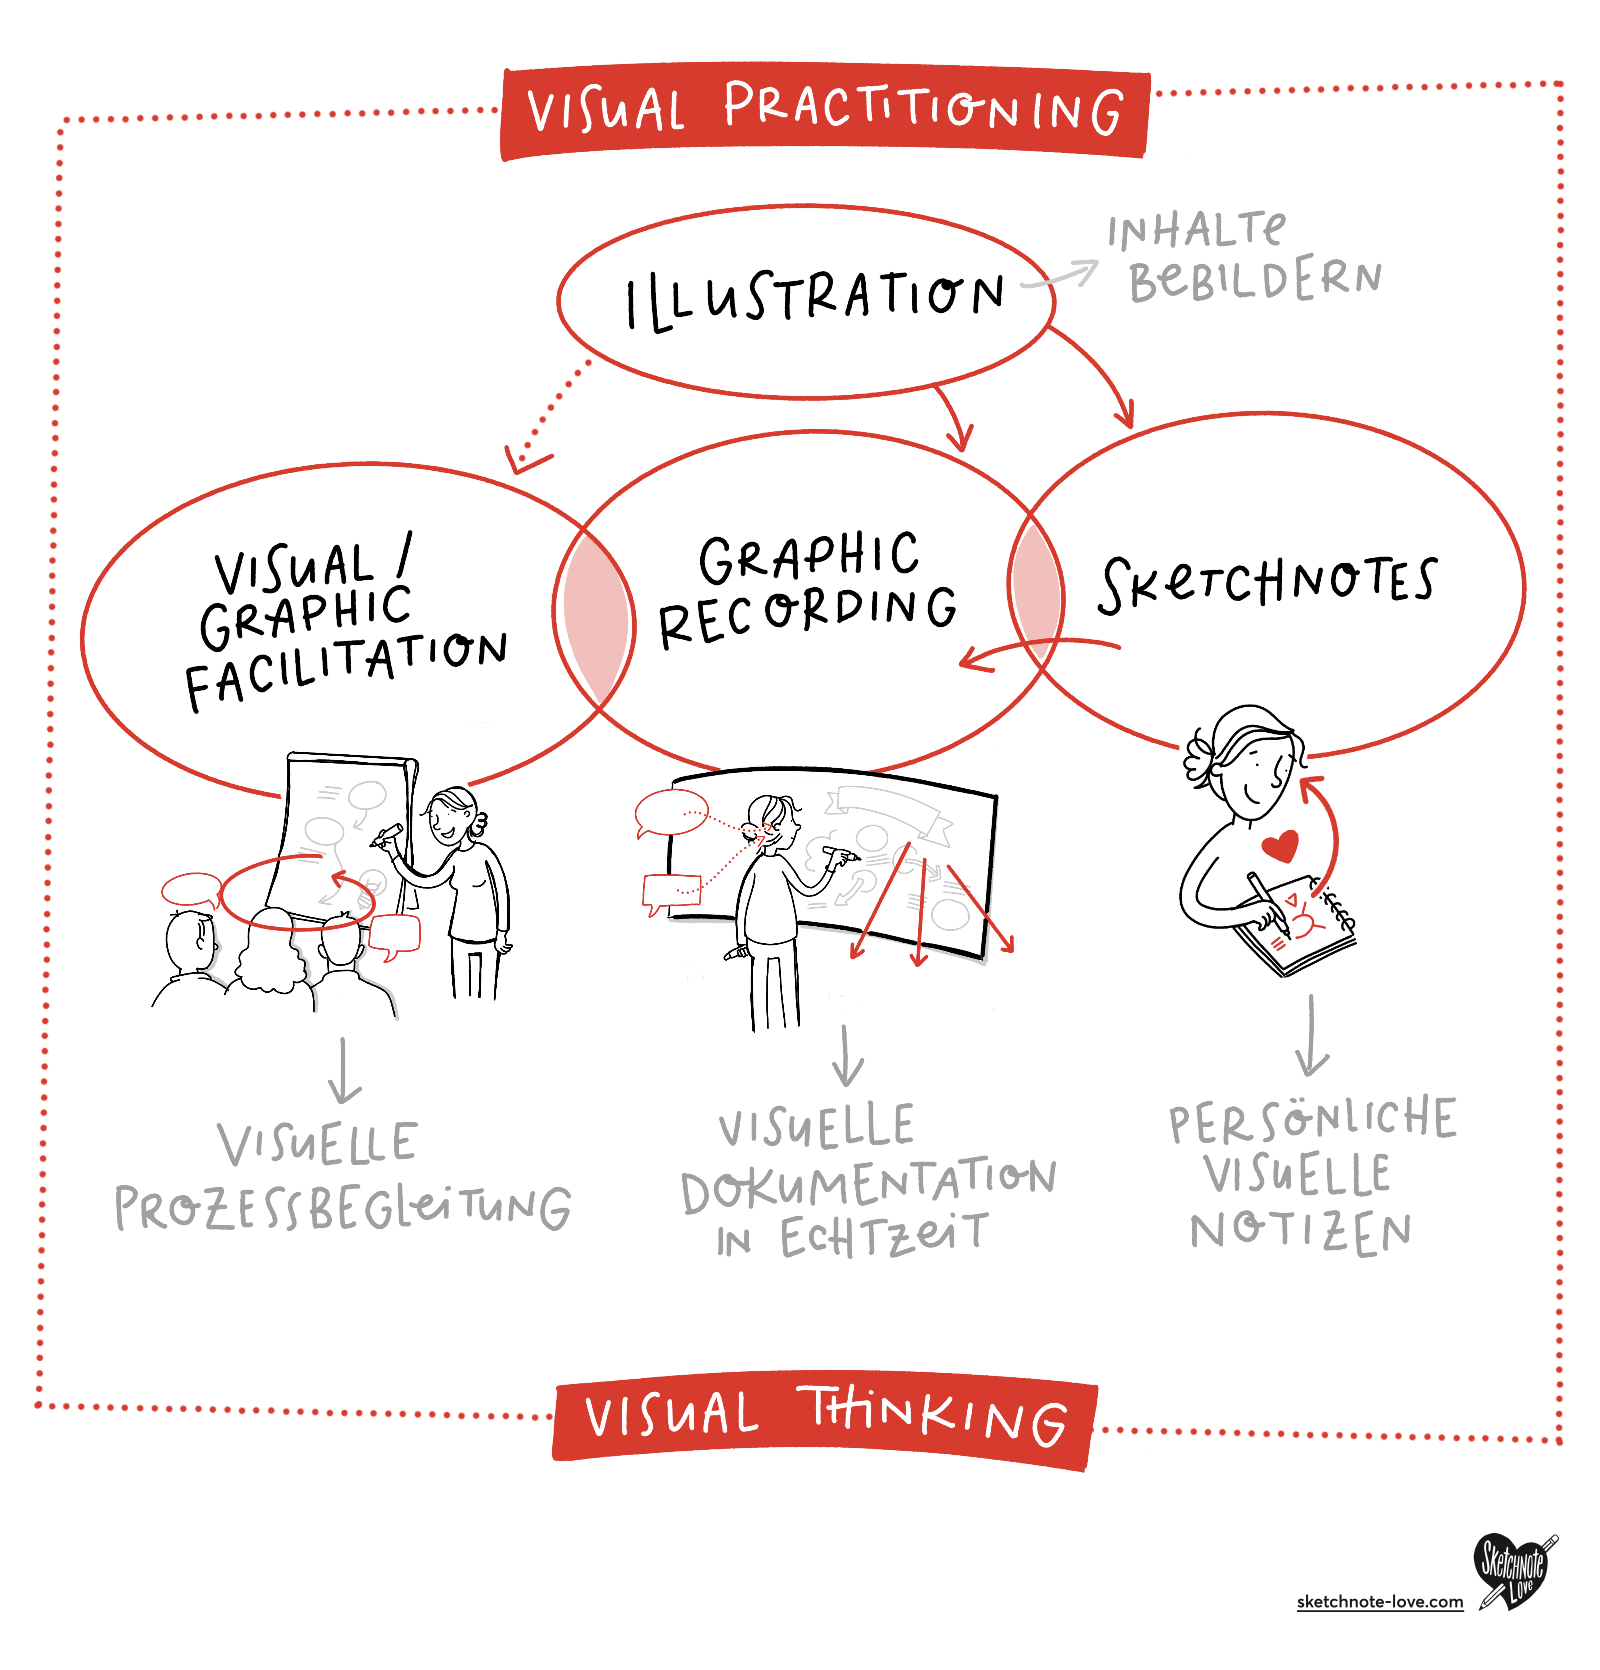 Sketchnotes Visual Thinking